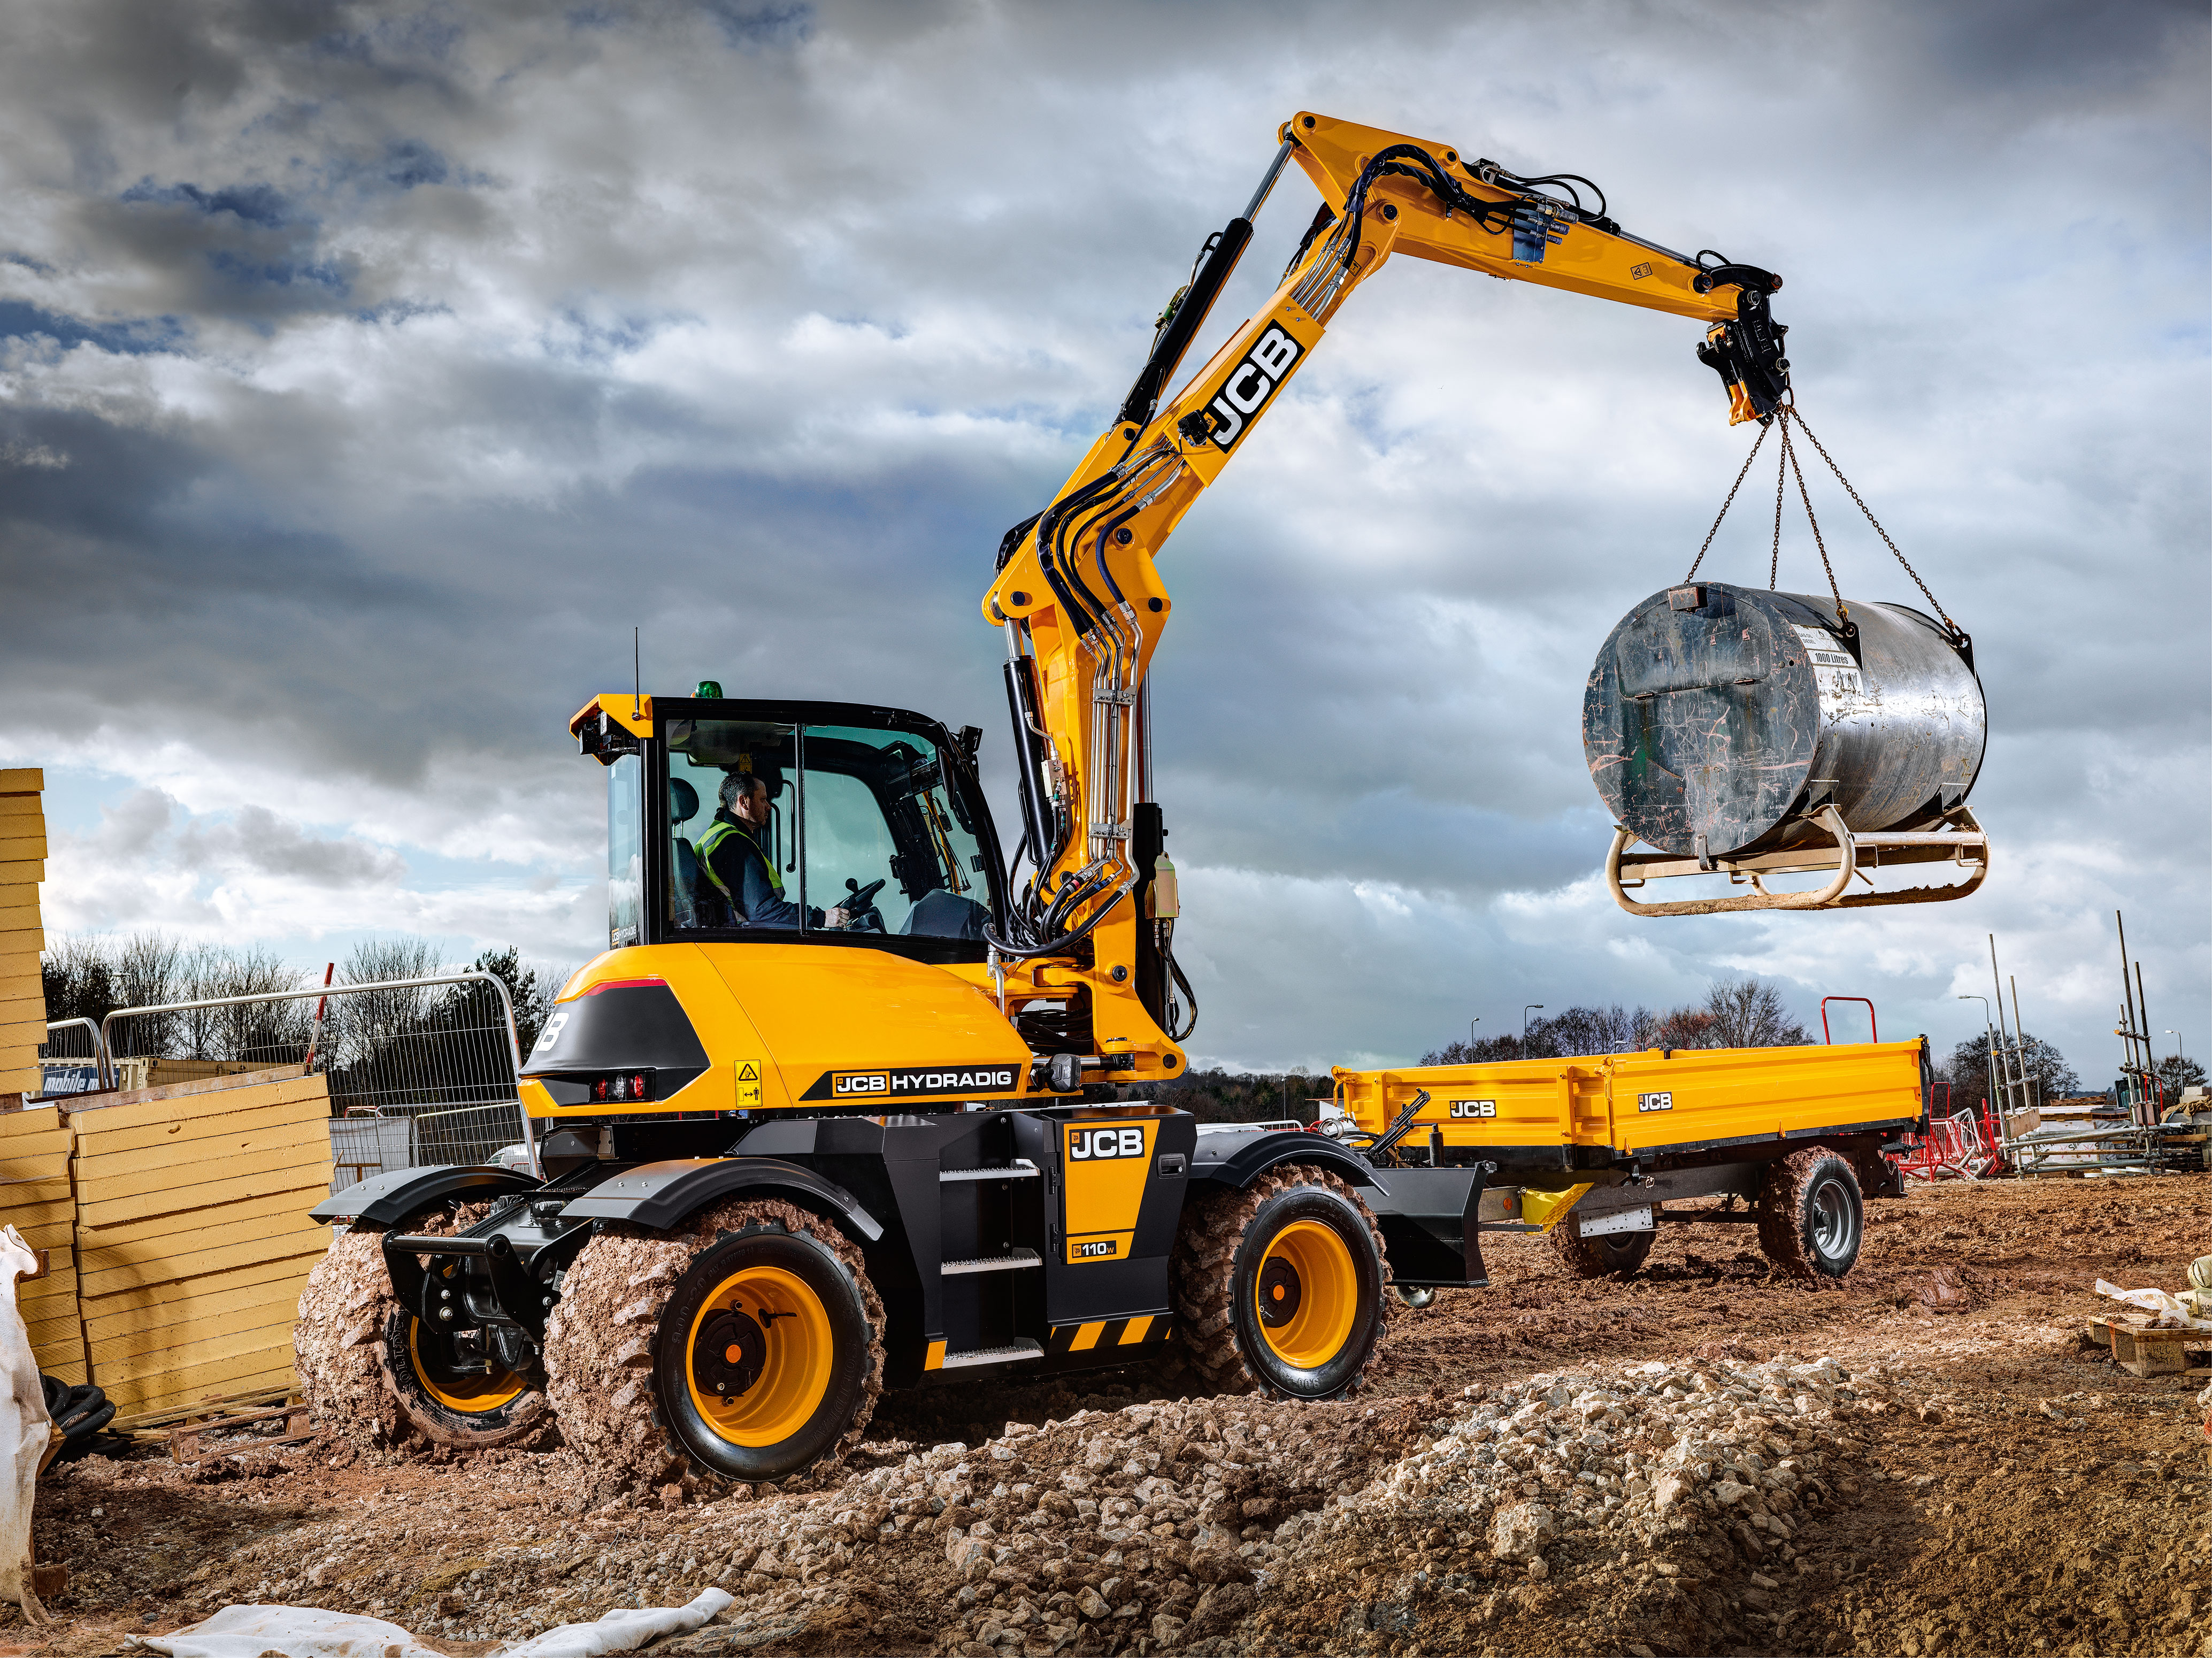 New Jobs At Jcb As Orders Flood In For The Jcb Hydradig